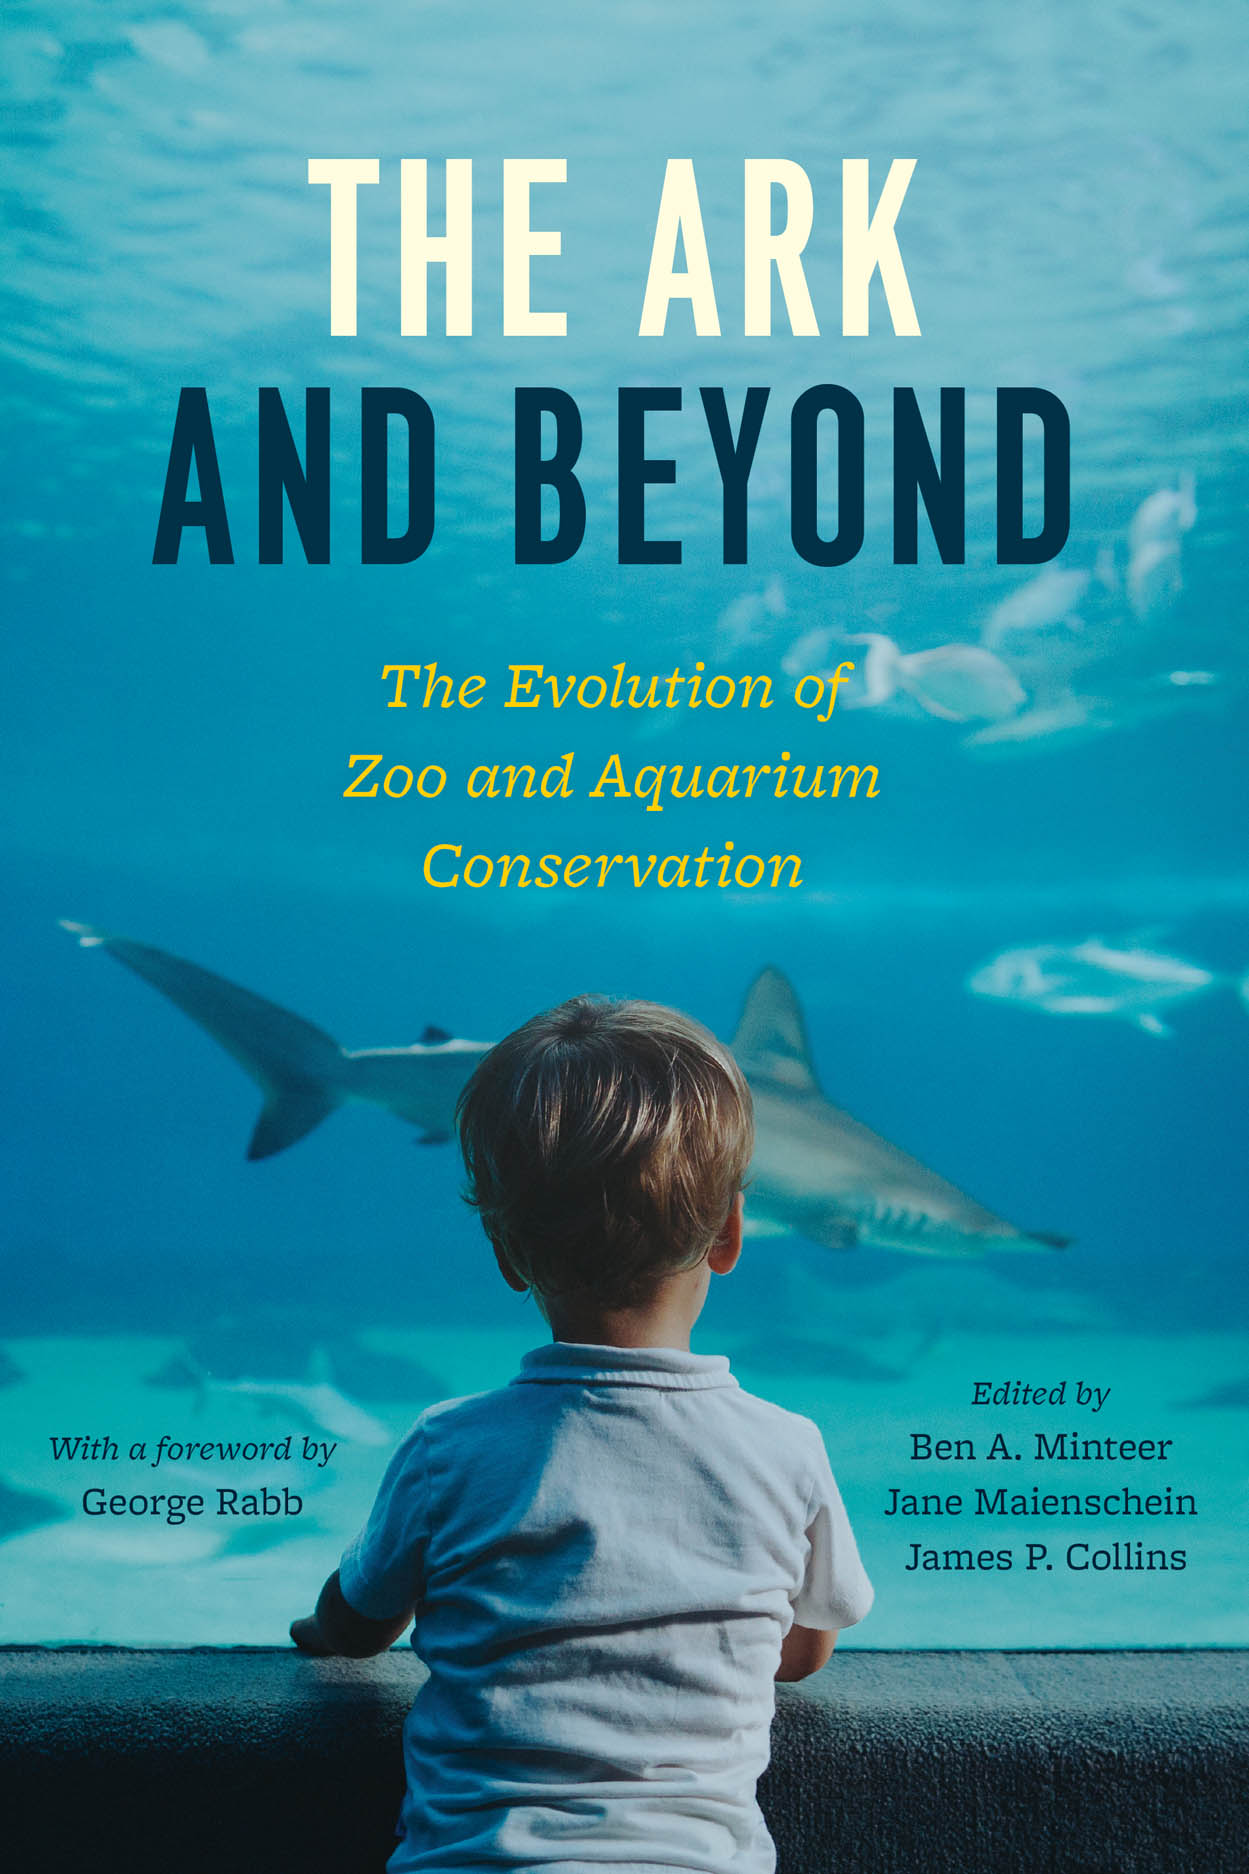 The Ark and Beyond: The Evolution of Zoo and Aquarium Conservation